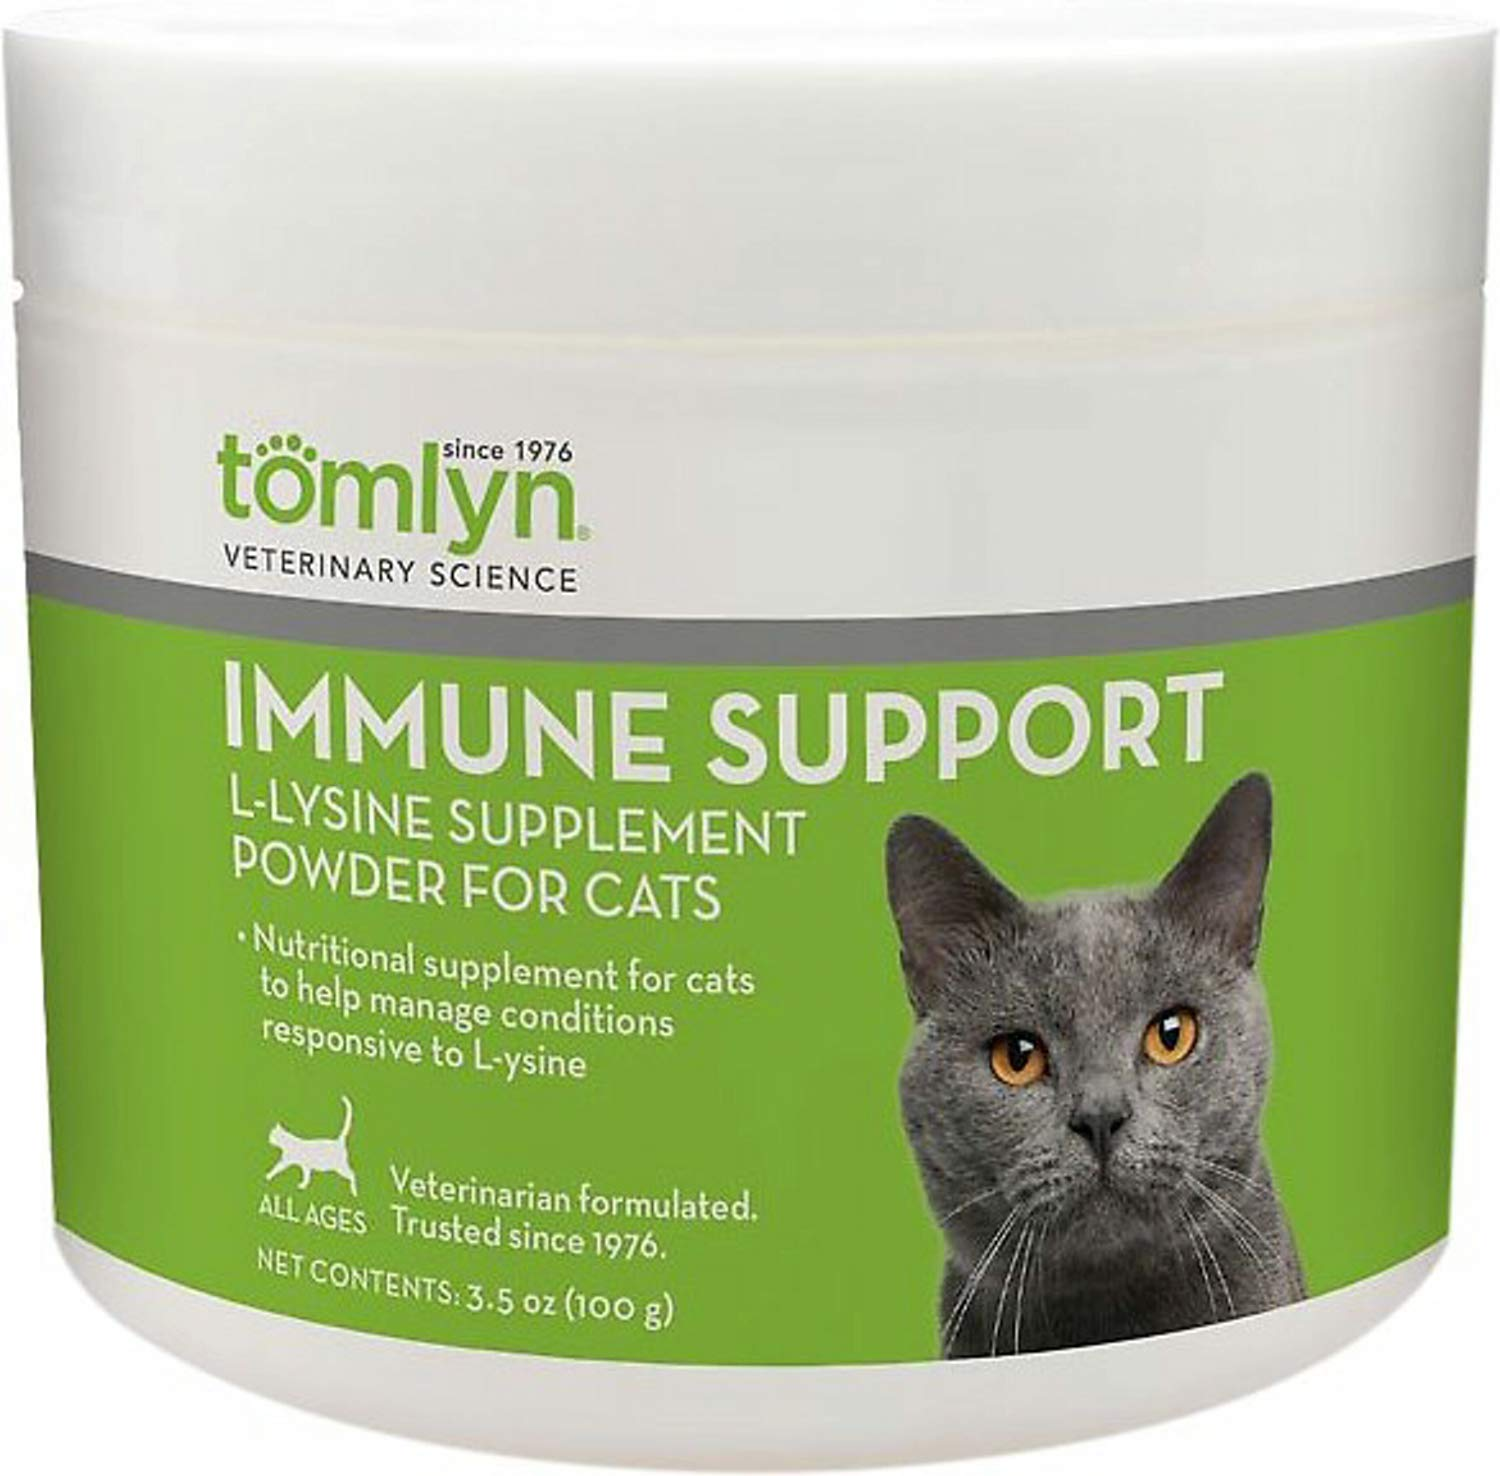 TOMLYN L-Lysine Powder for Cats and Kittens, 100 Gram, 12 Pack